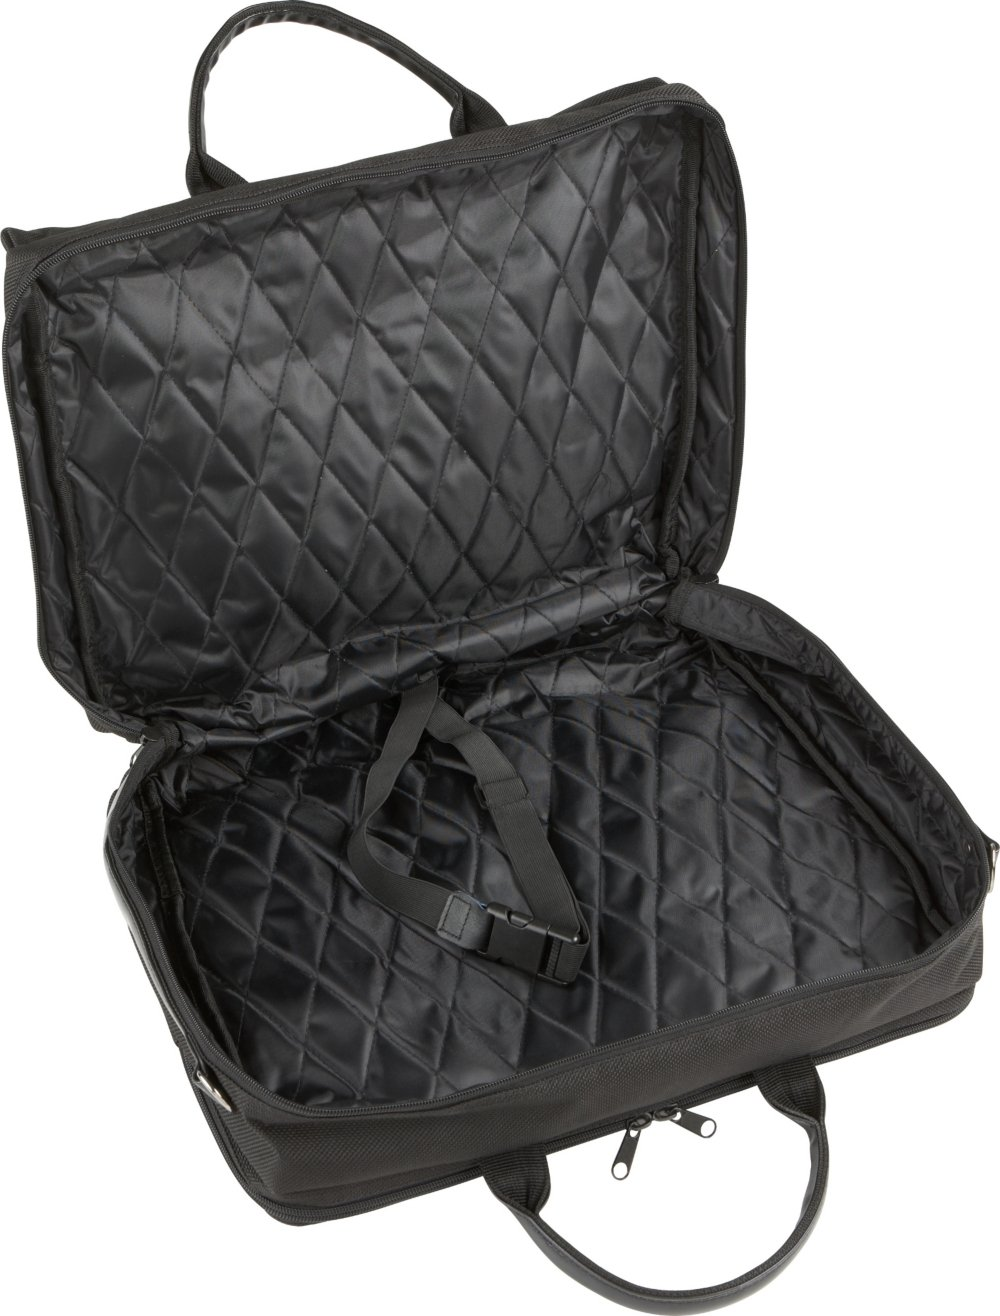 Buffet Crampon Attache Clarinet Case Covers For Double Attache Case BC96722NC